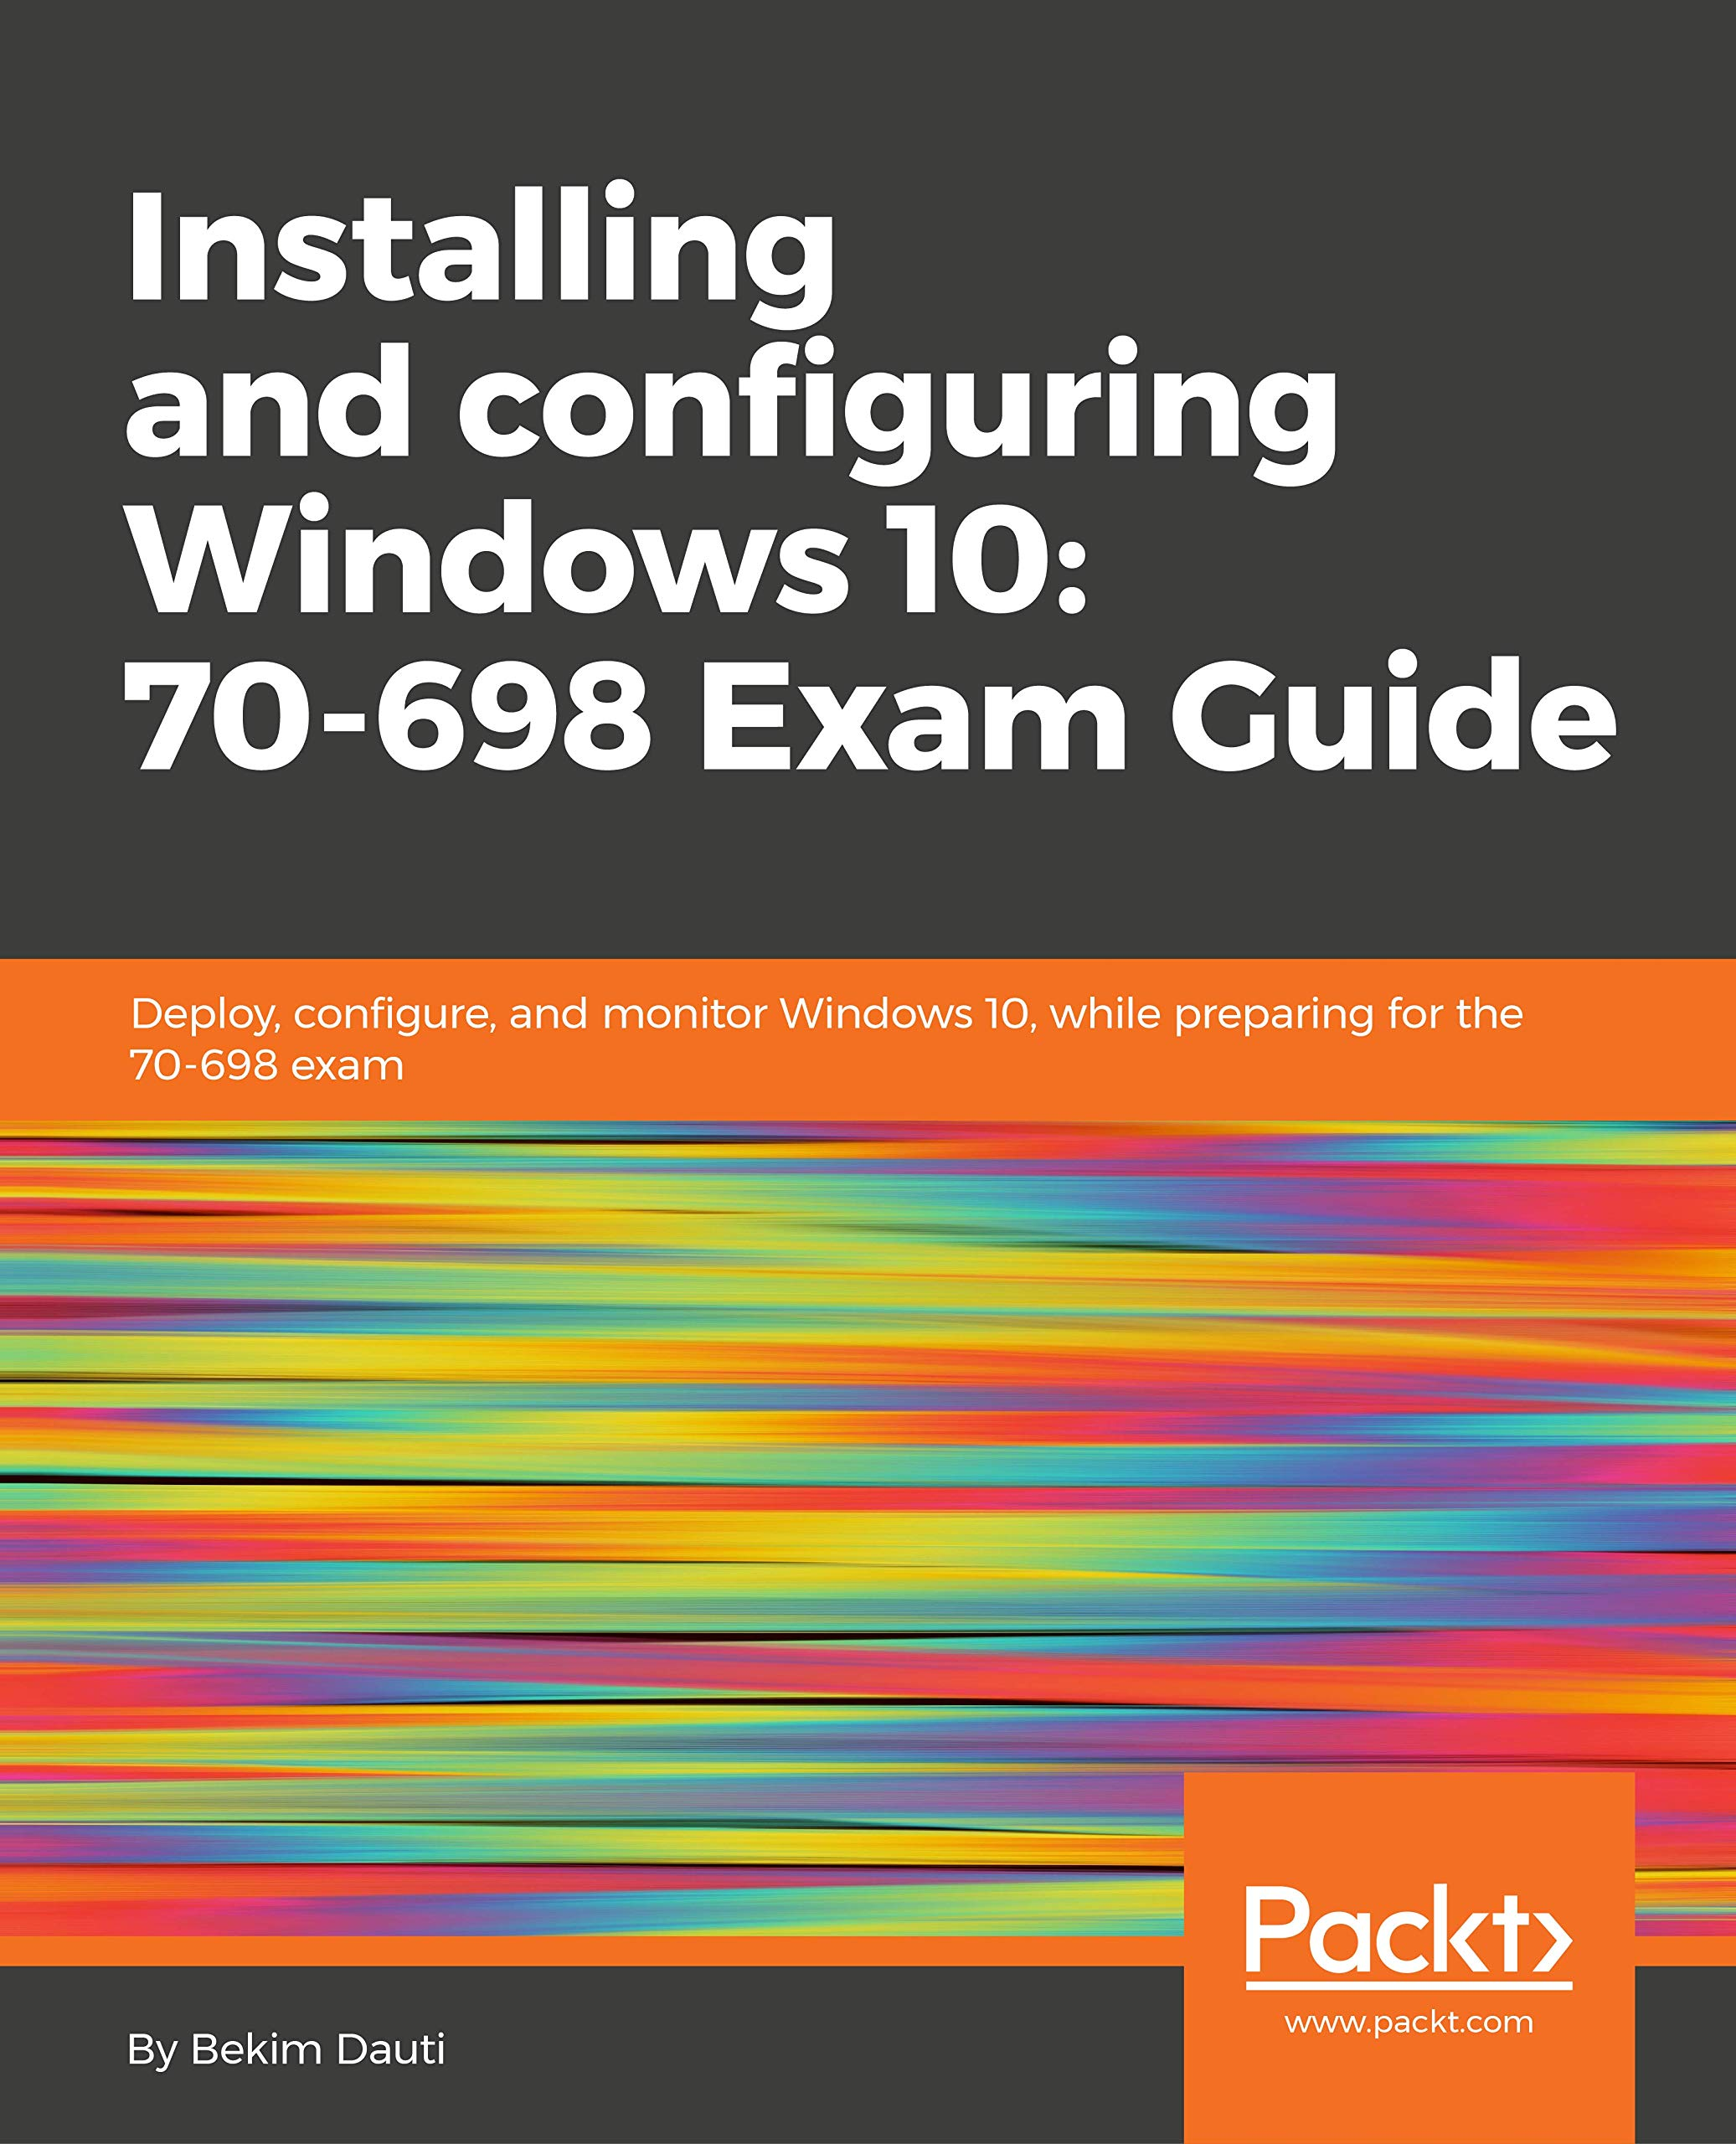 Installing and configuring Windows 10: 70-698 Exam Guide: Deploy,  configure, and monitor Windows 10, while preparing for the 70-698 exam:  Bekim Dauti: ...